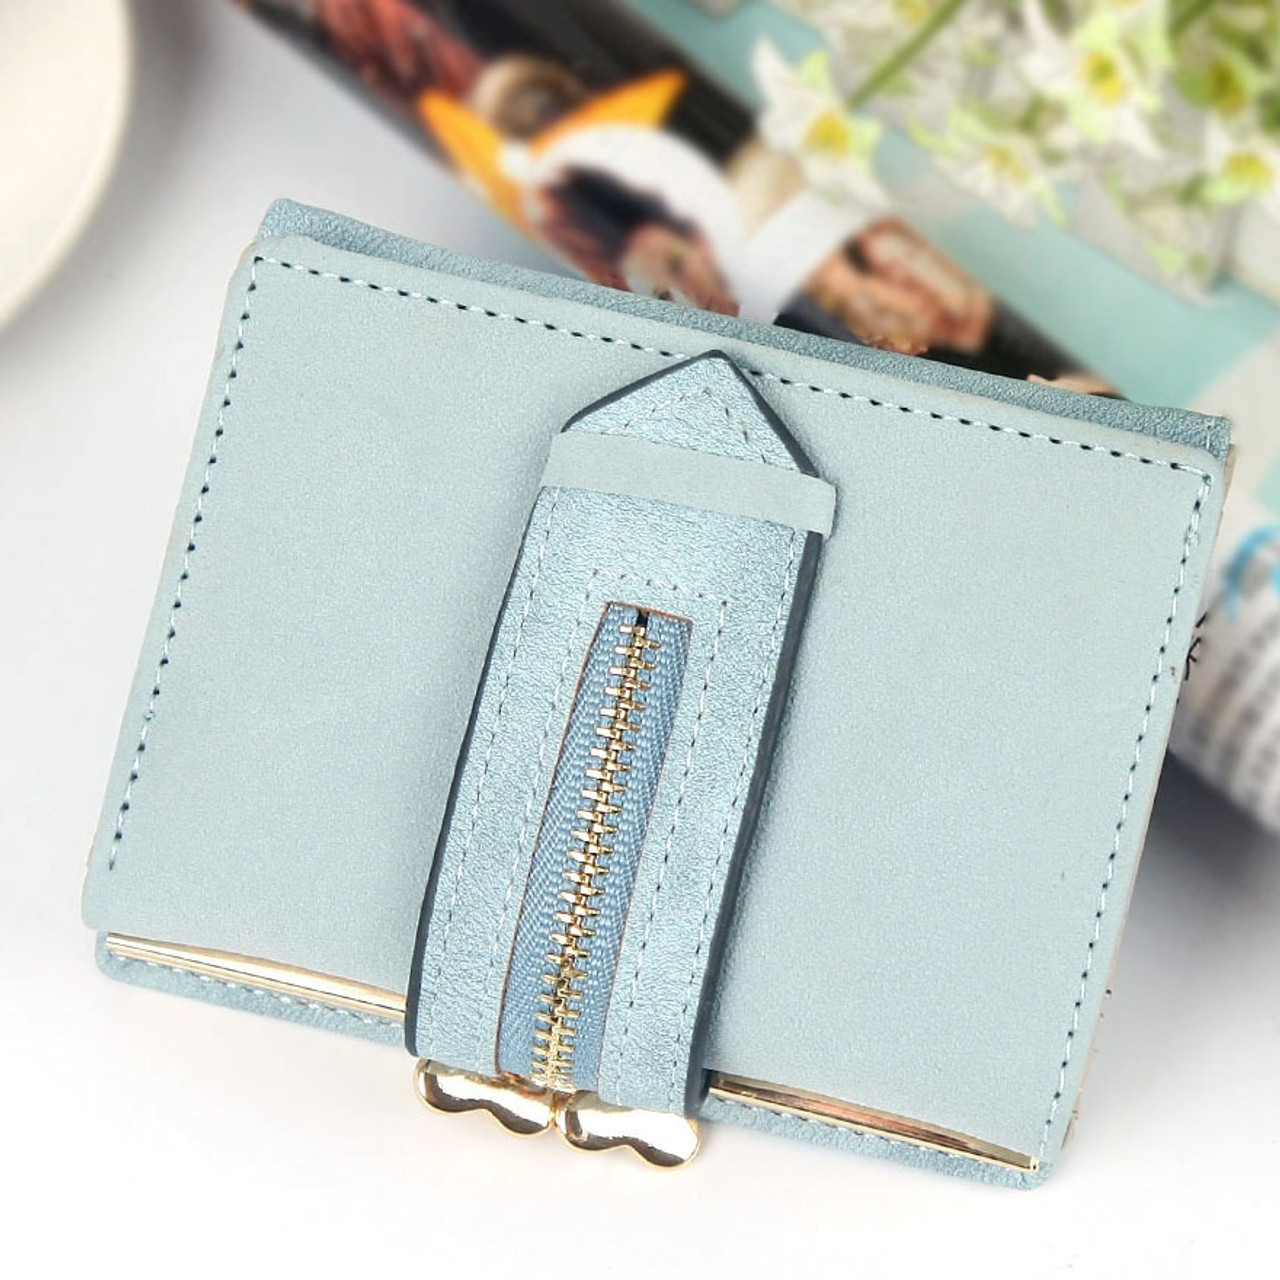 cb1a1e89cb4 ... Ladies Wallet Female Small Nubuck Leather Wallet Three Fold Drawstring  Hasp Clutch Money Bag Womens Wallets ...